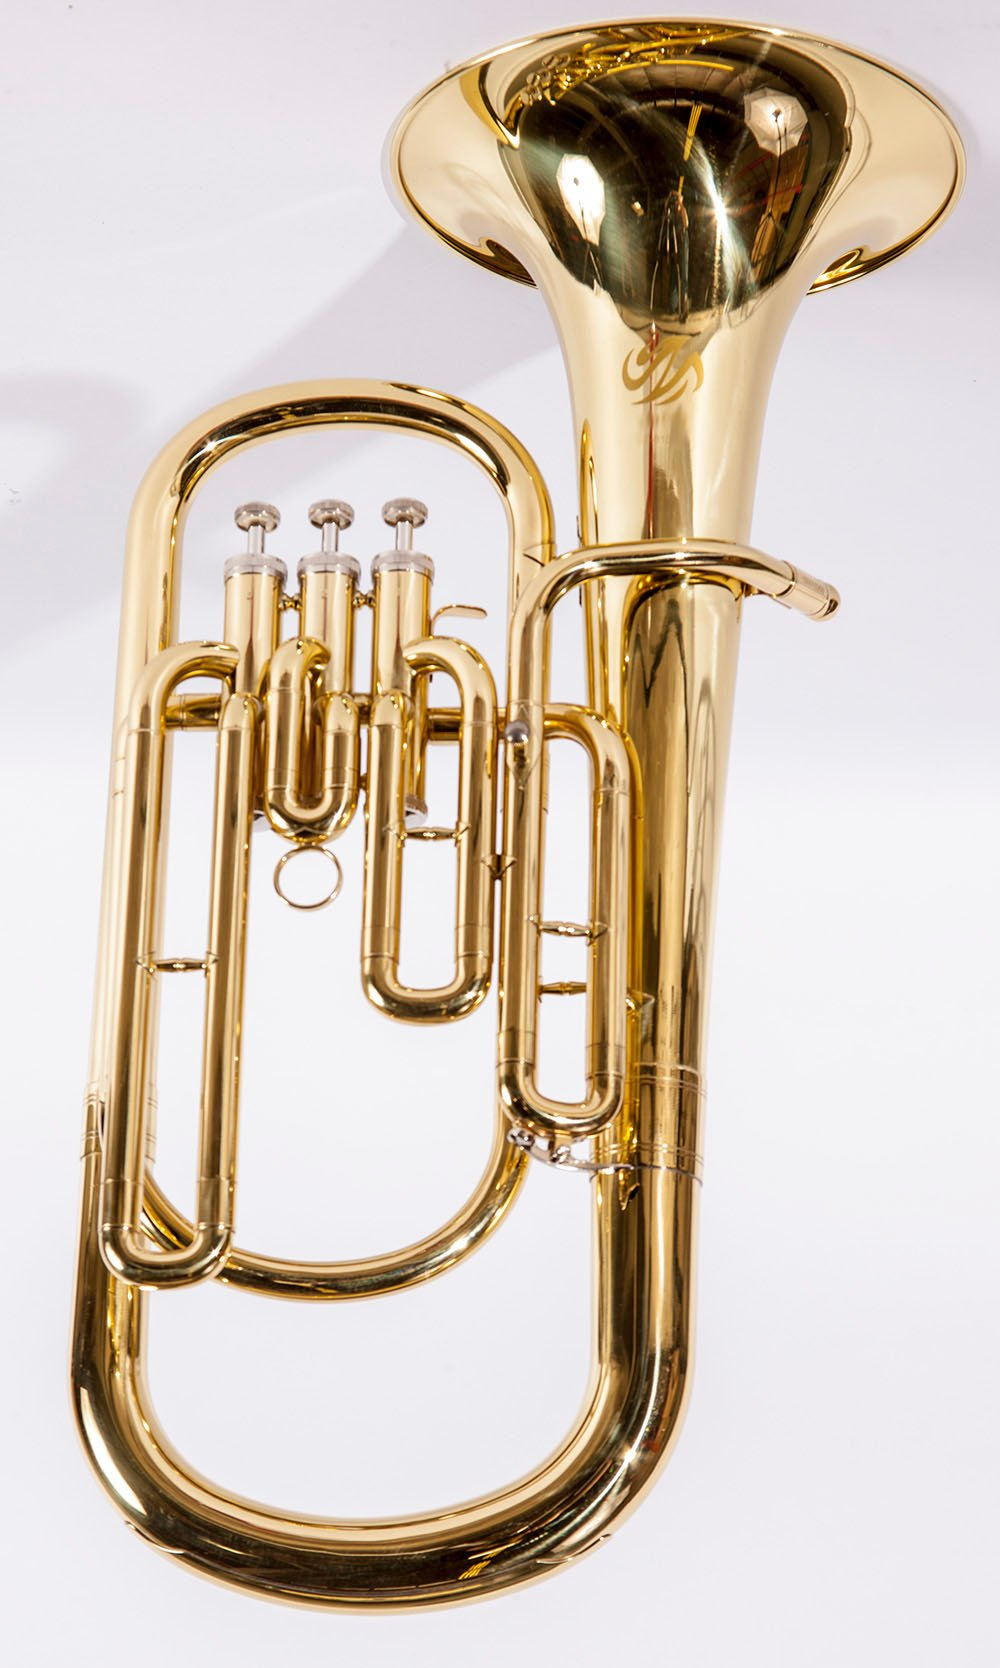 Valkyrie 801L3 Standard Level Baritone Horn, Gold by Valkyrie